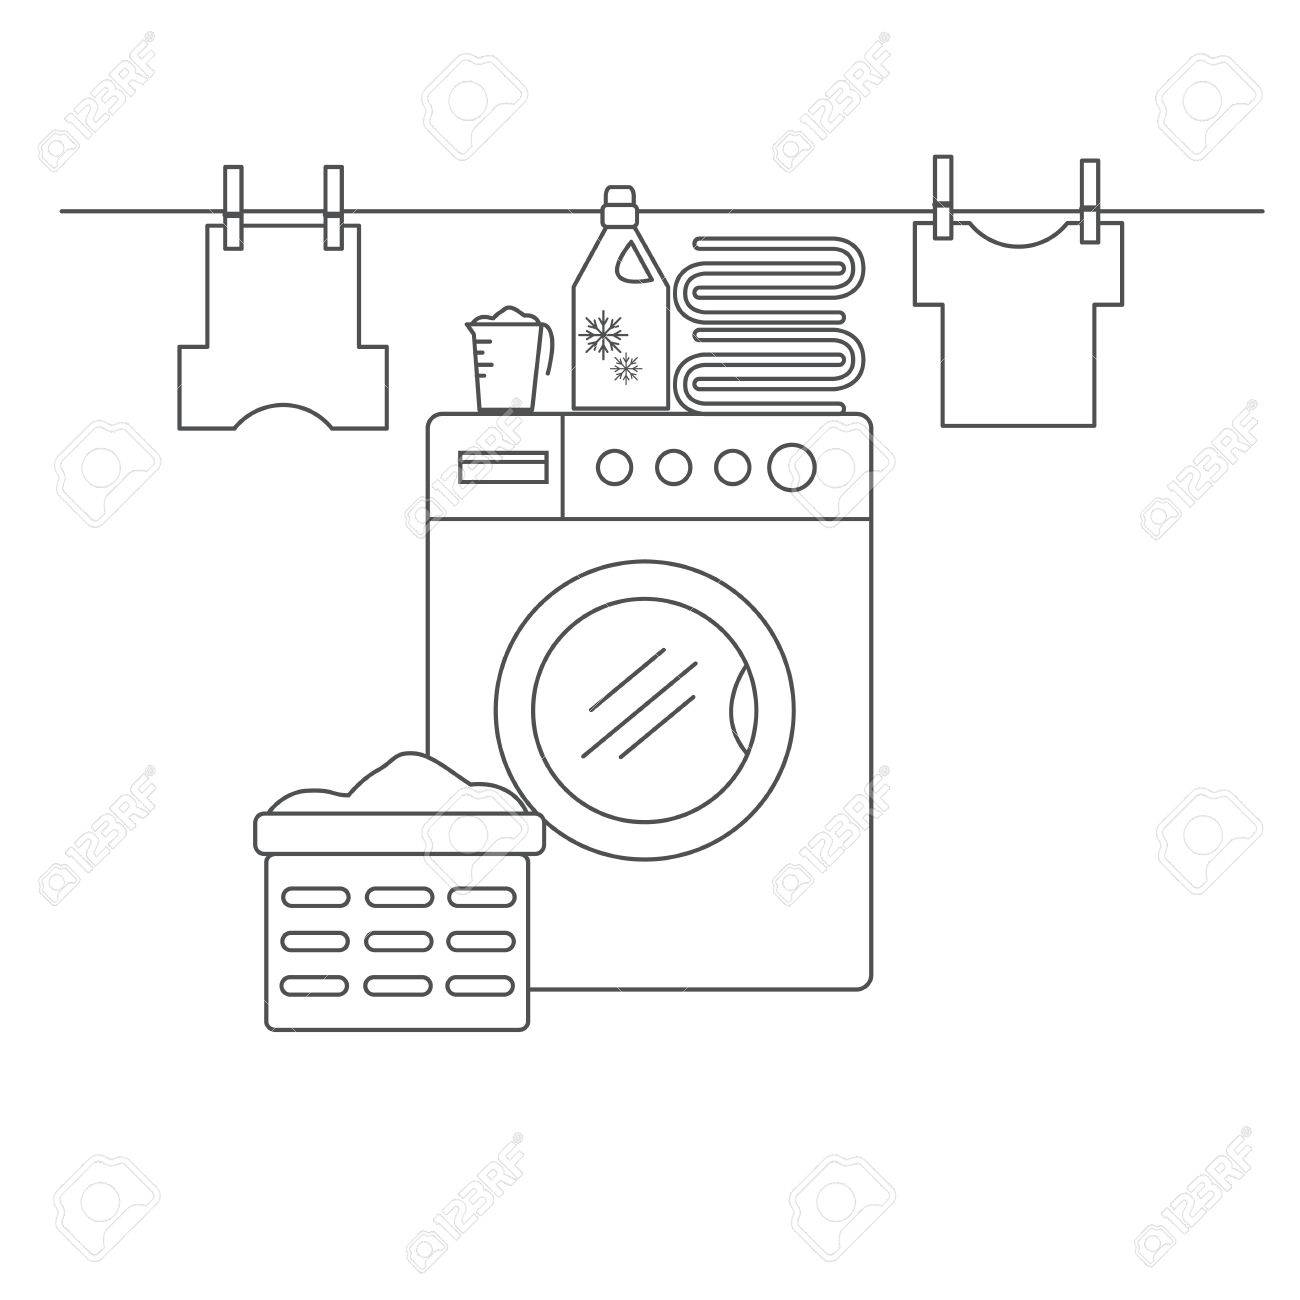 Laundry room for washing and drying items. Laundry room with washing machine, linens and laundry facilities. Laundry room in the style of the line. Vector illustration. - 58294003